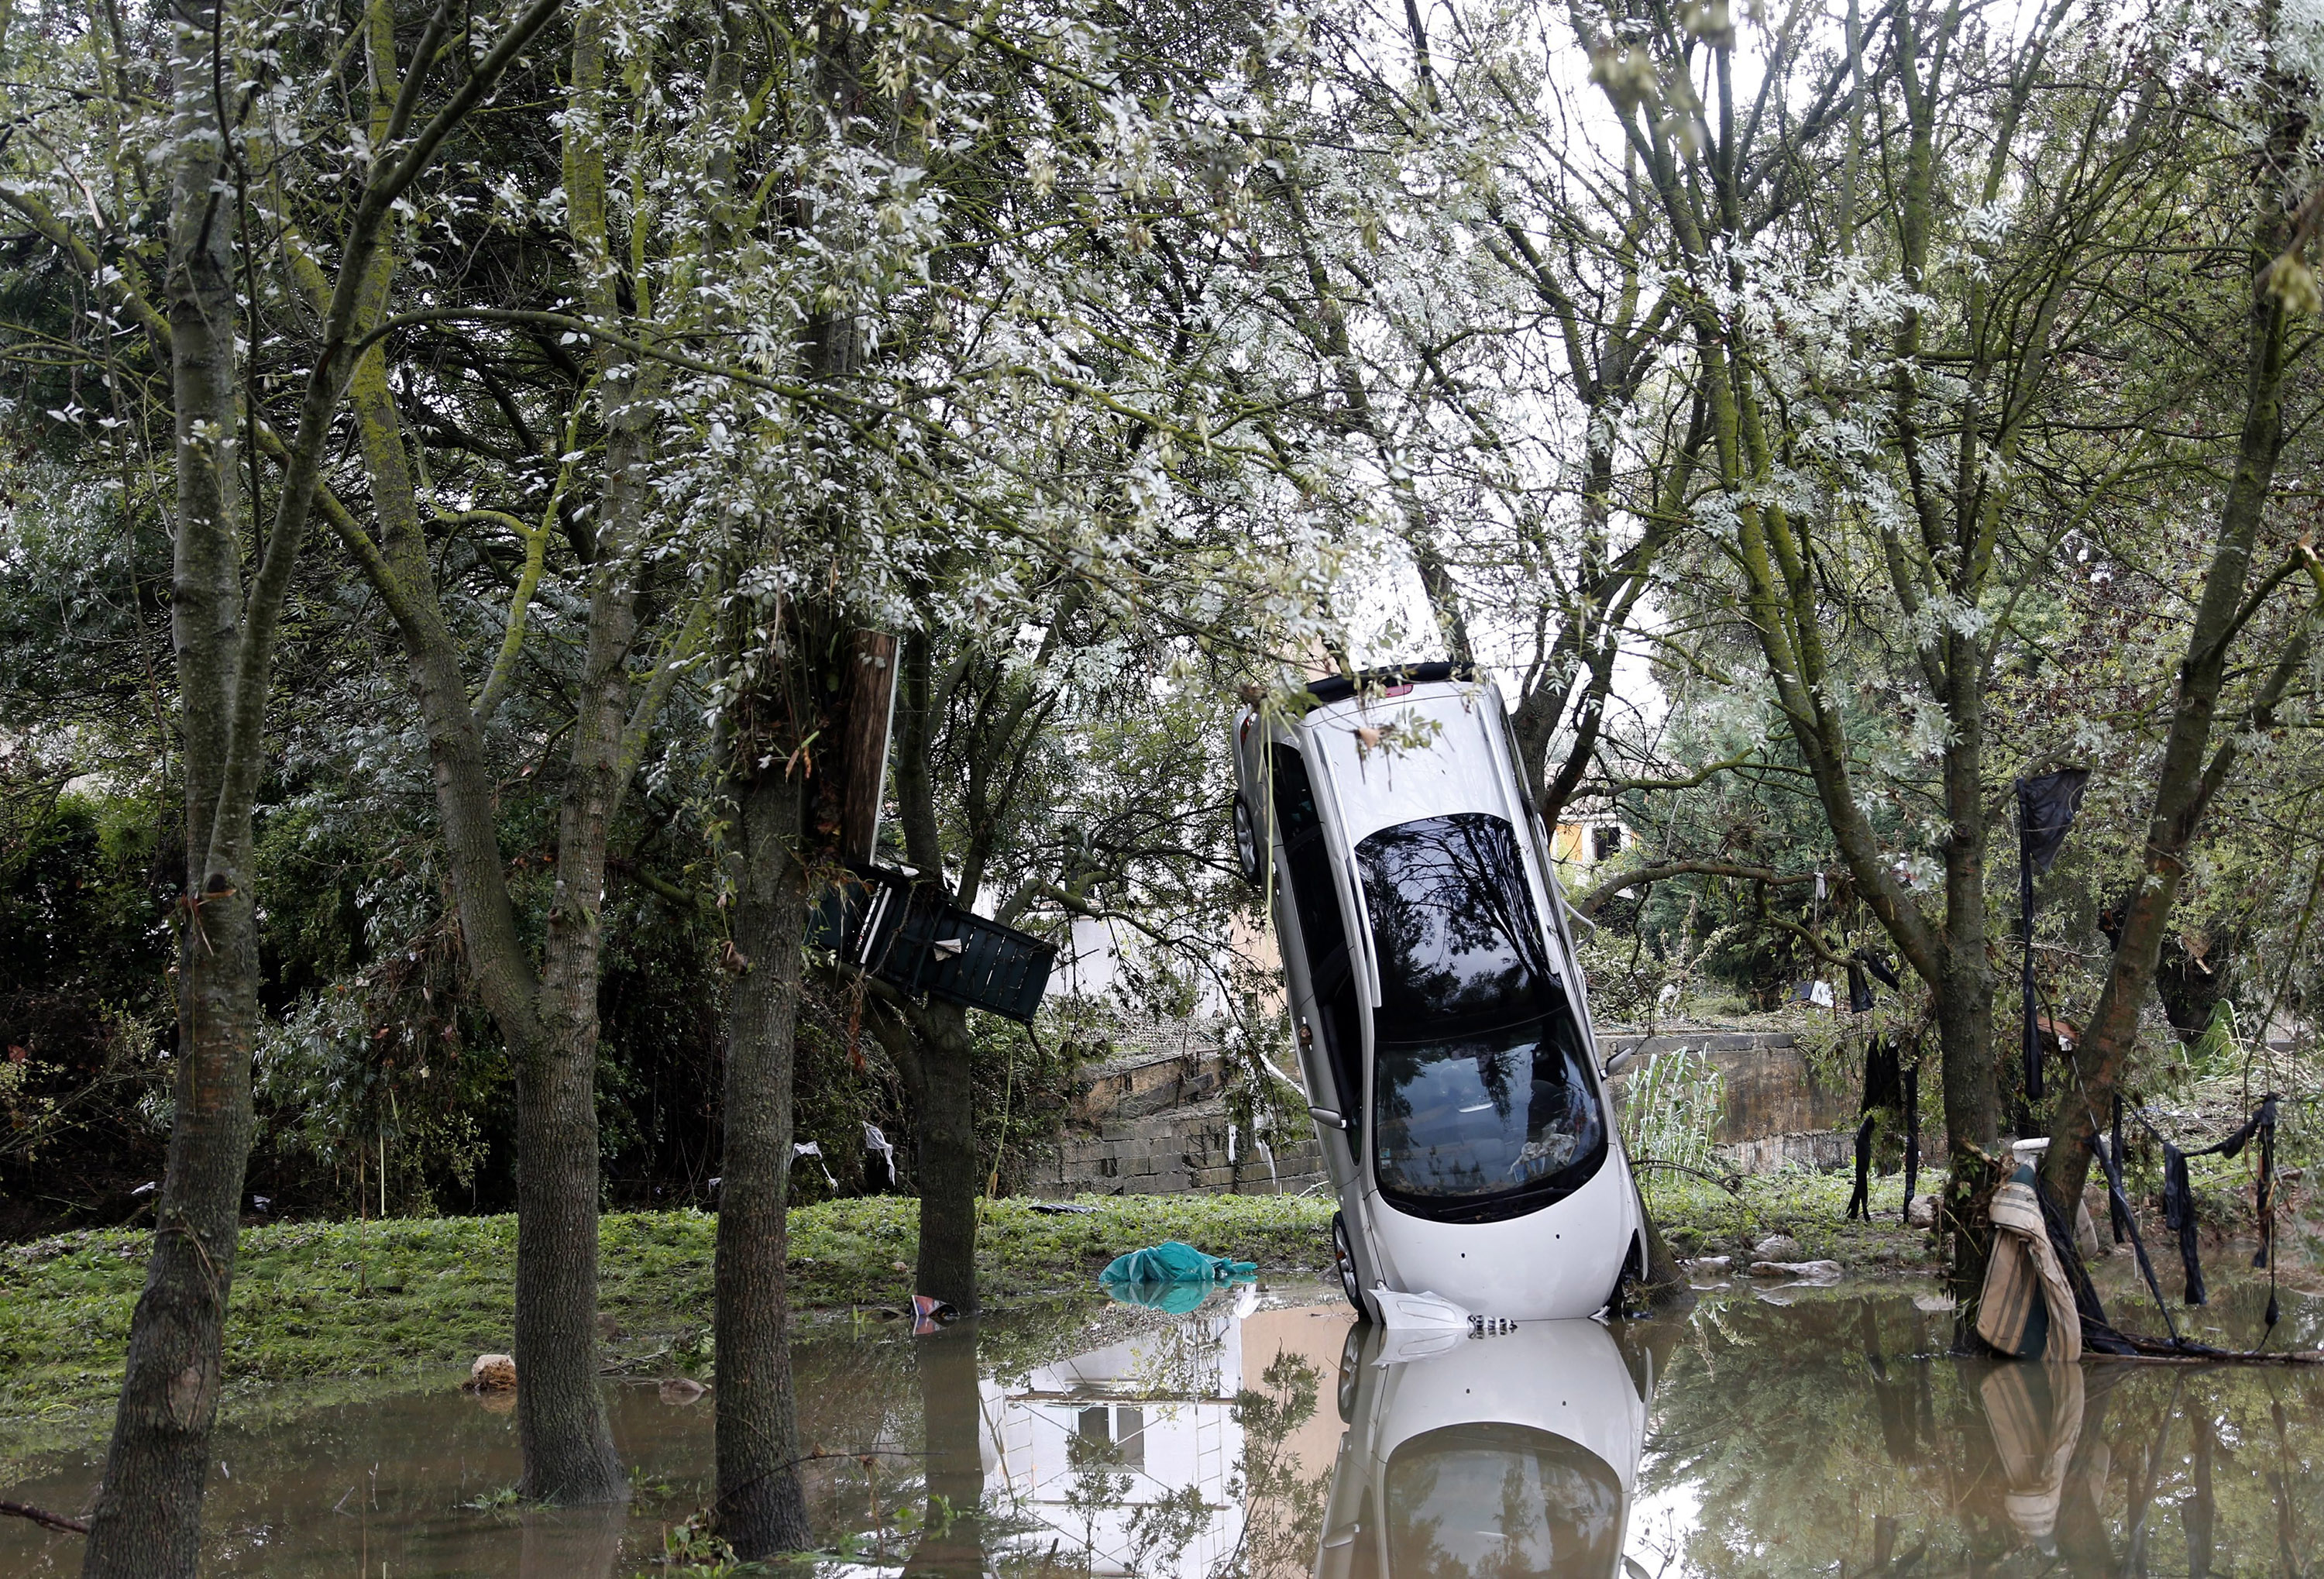 A destroyed car at a tree after heavy floods in Grabels, near Montpellier, Southern France, Oct. 7, 2014.